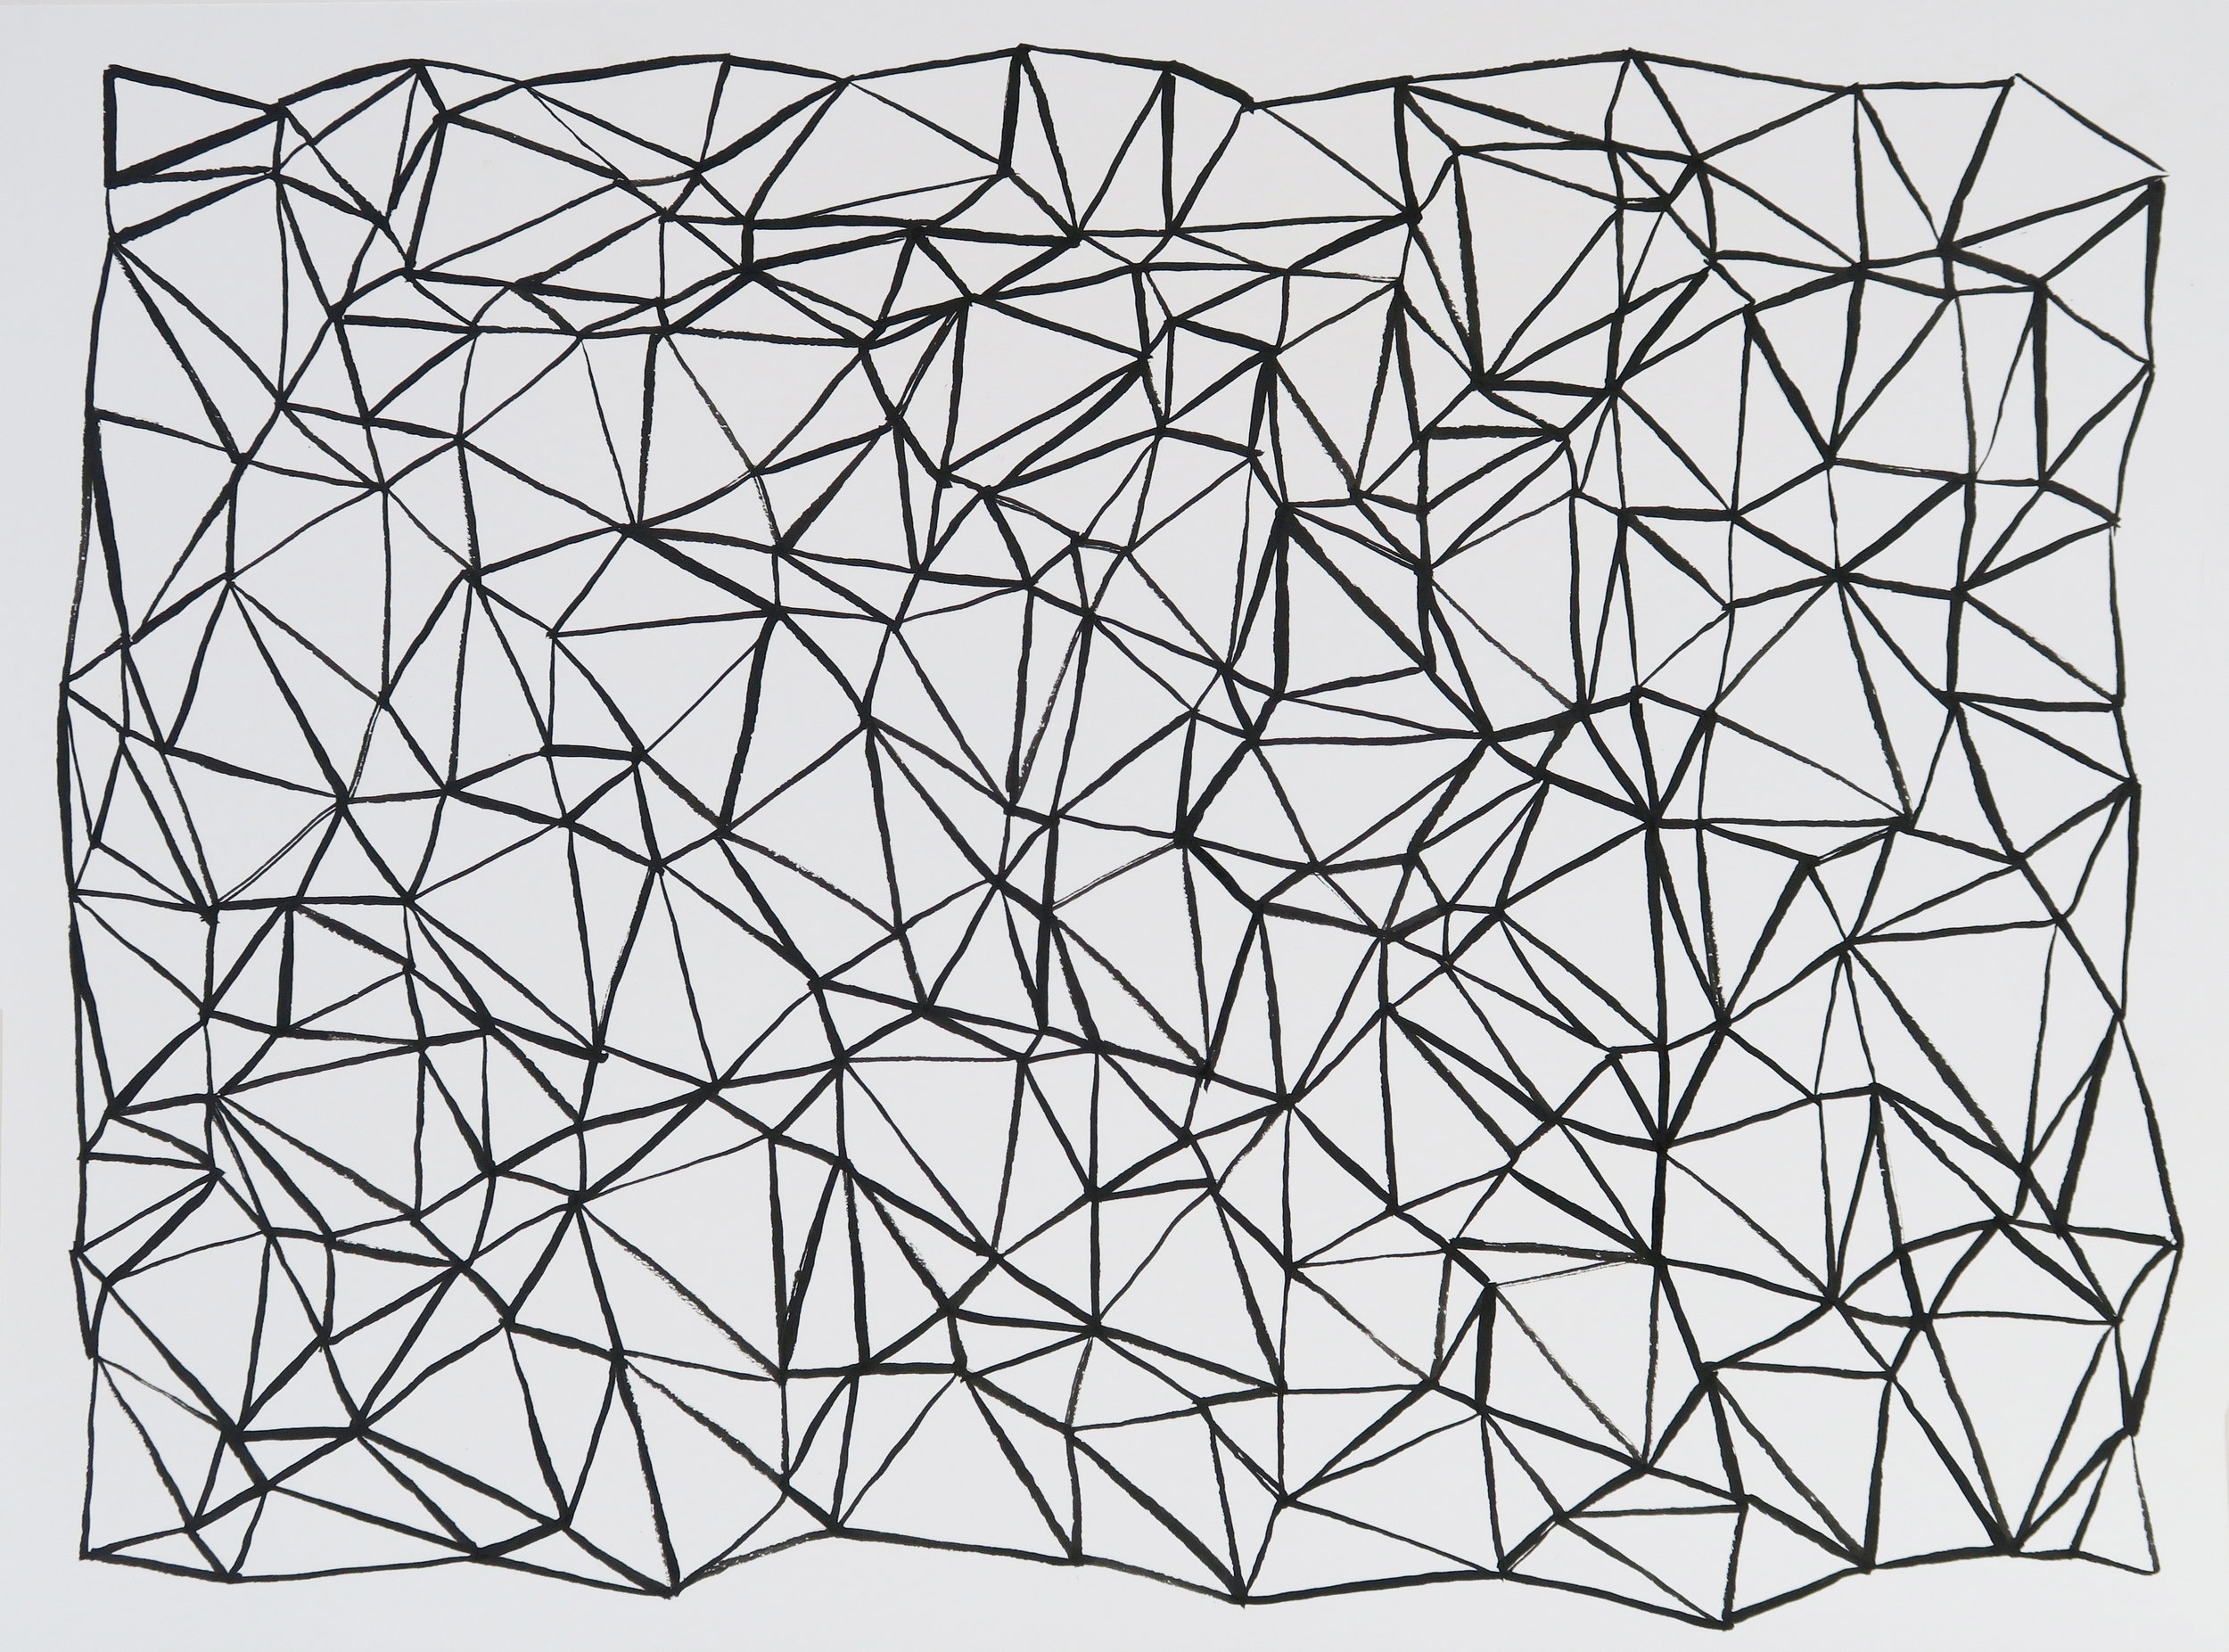 Black line drawing, 2012, ink on paper, 24x32cm